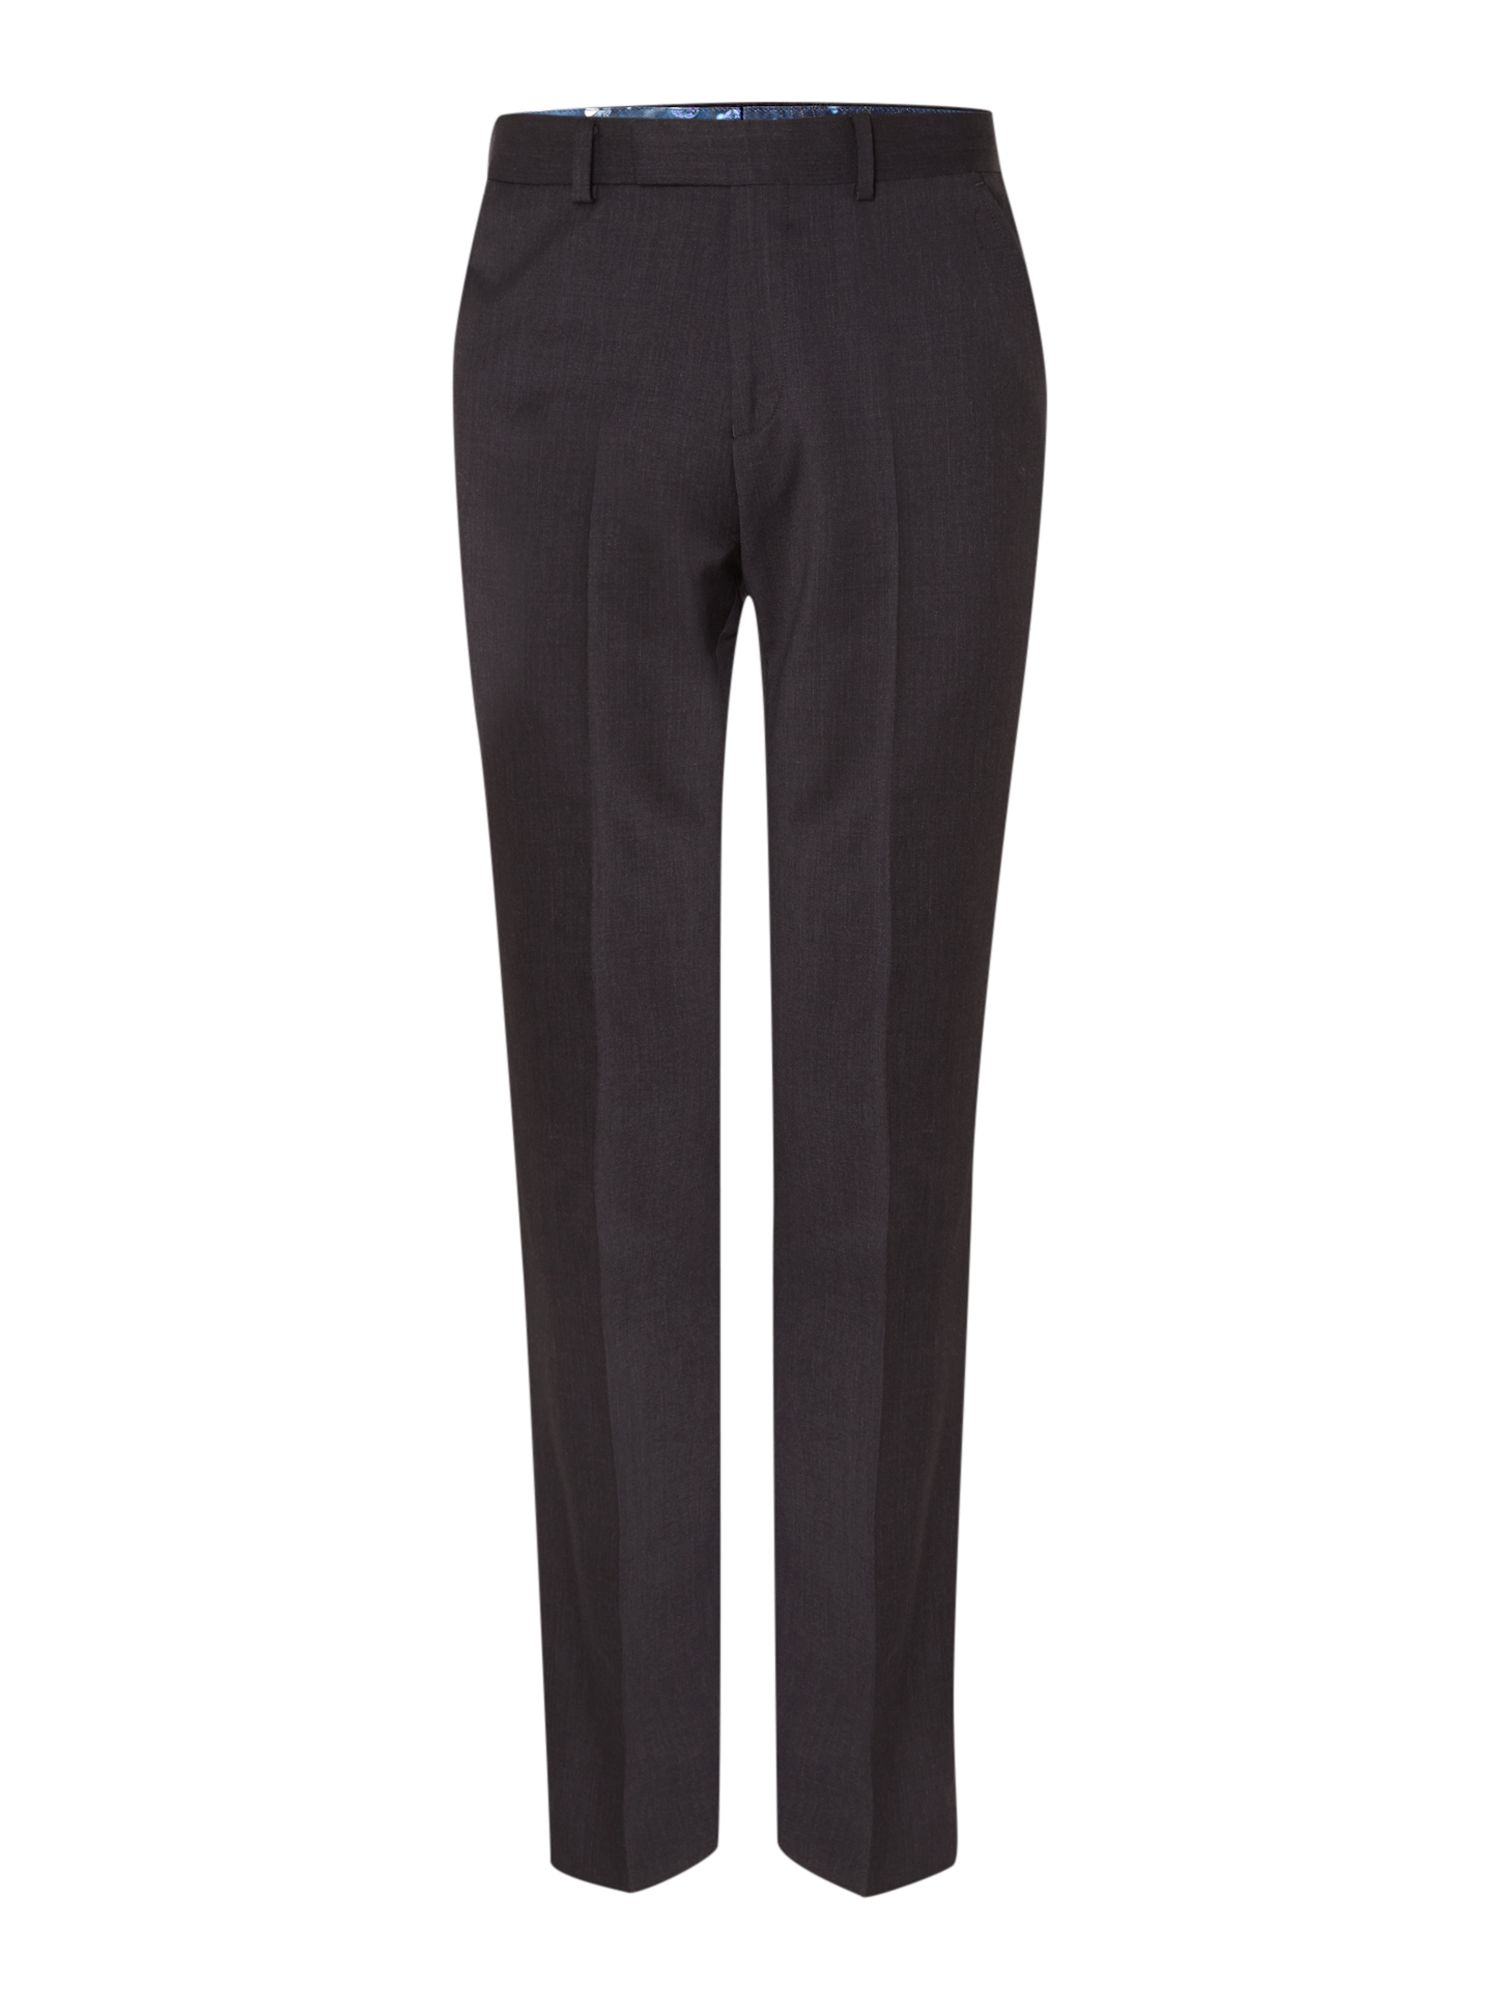 Timeless slim fit solid suit trouser